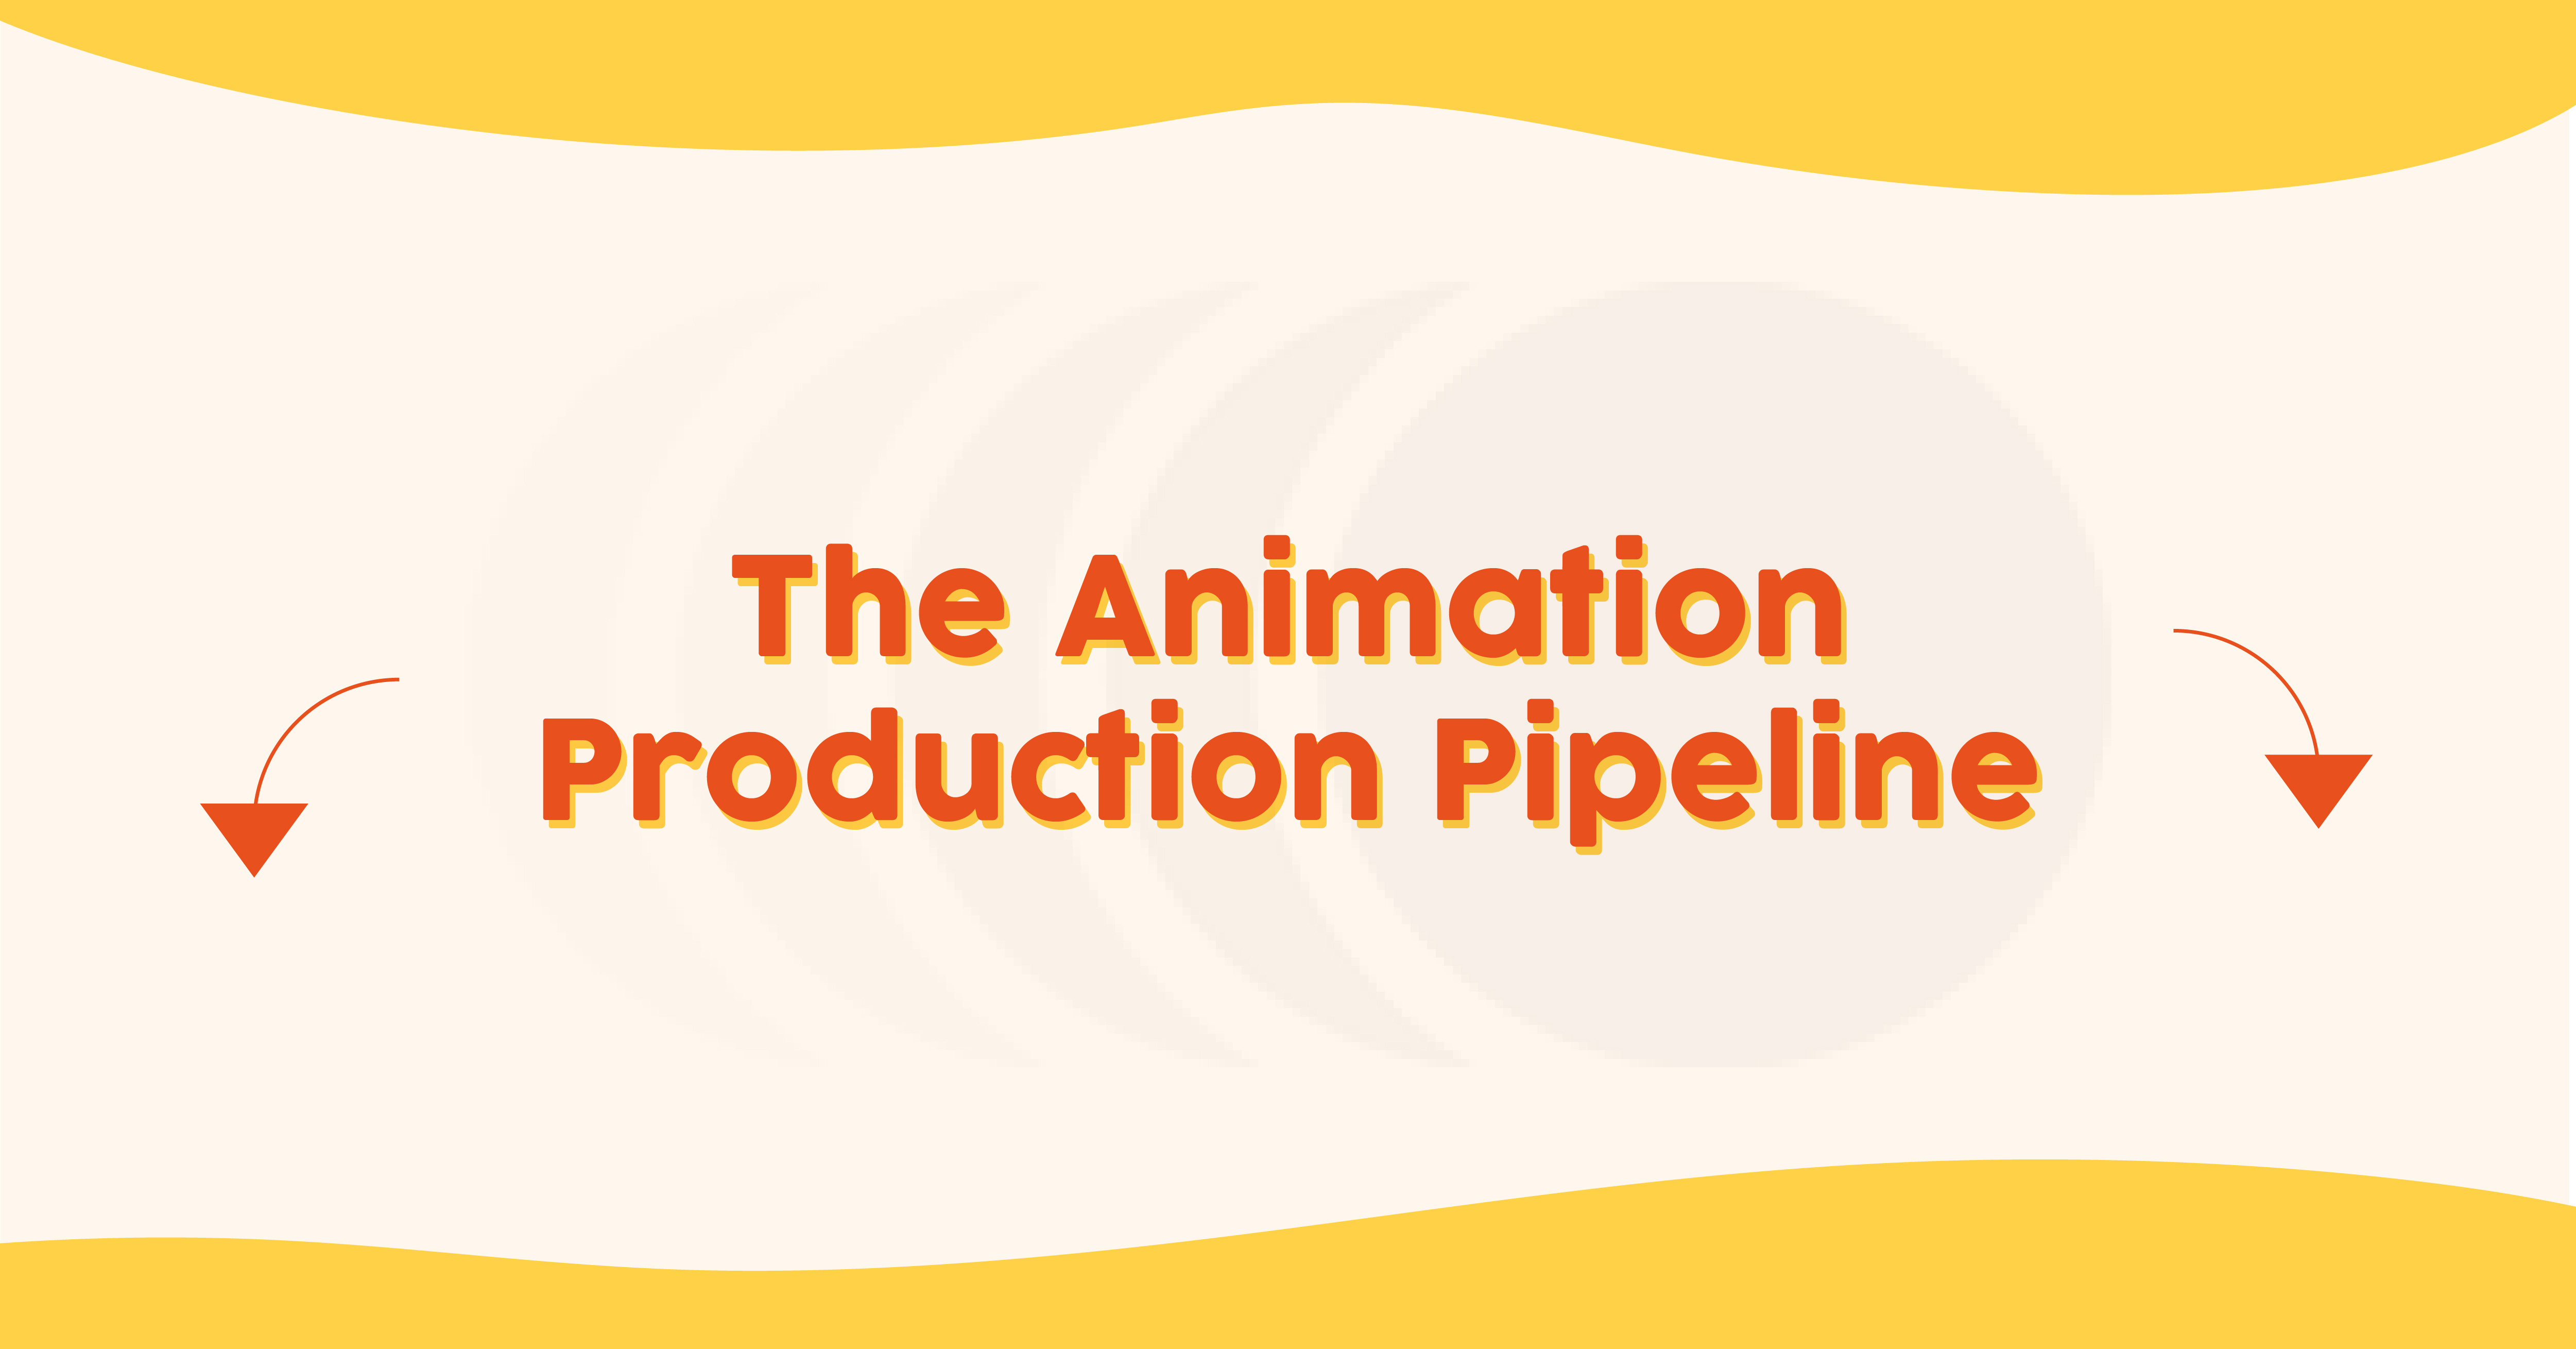 The Animation Production Pipeline